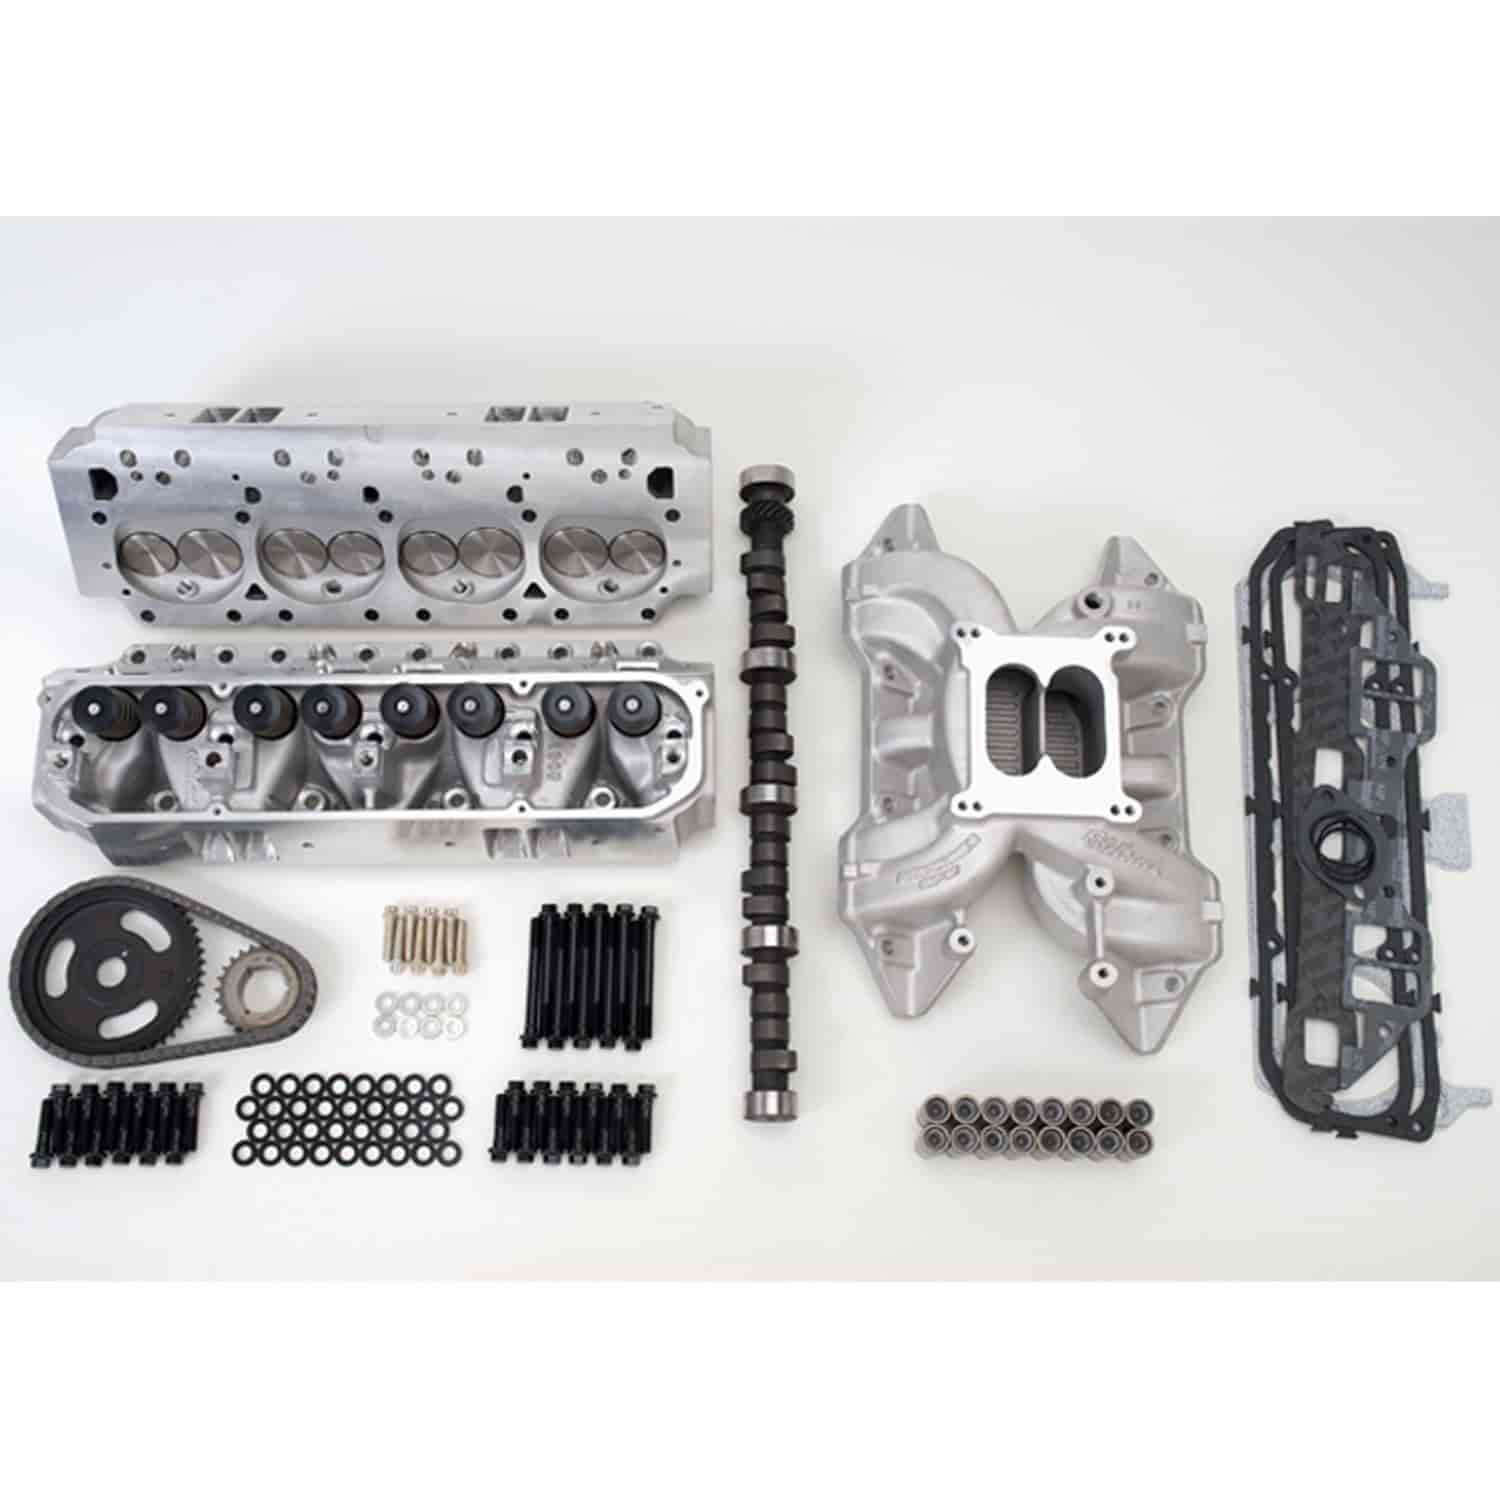 Edelbrock 2019 Rpm Power Package Top End Kit Small Block: Edelbrock 2049: RPM Power Package Top End Kit For 1967